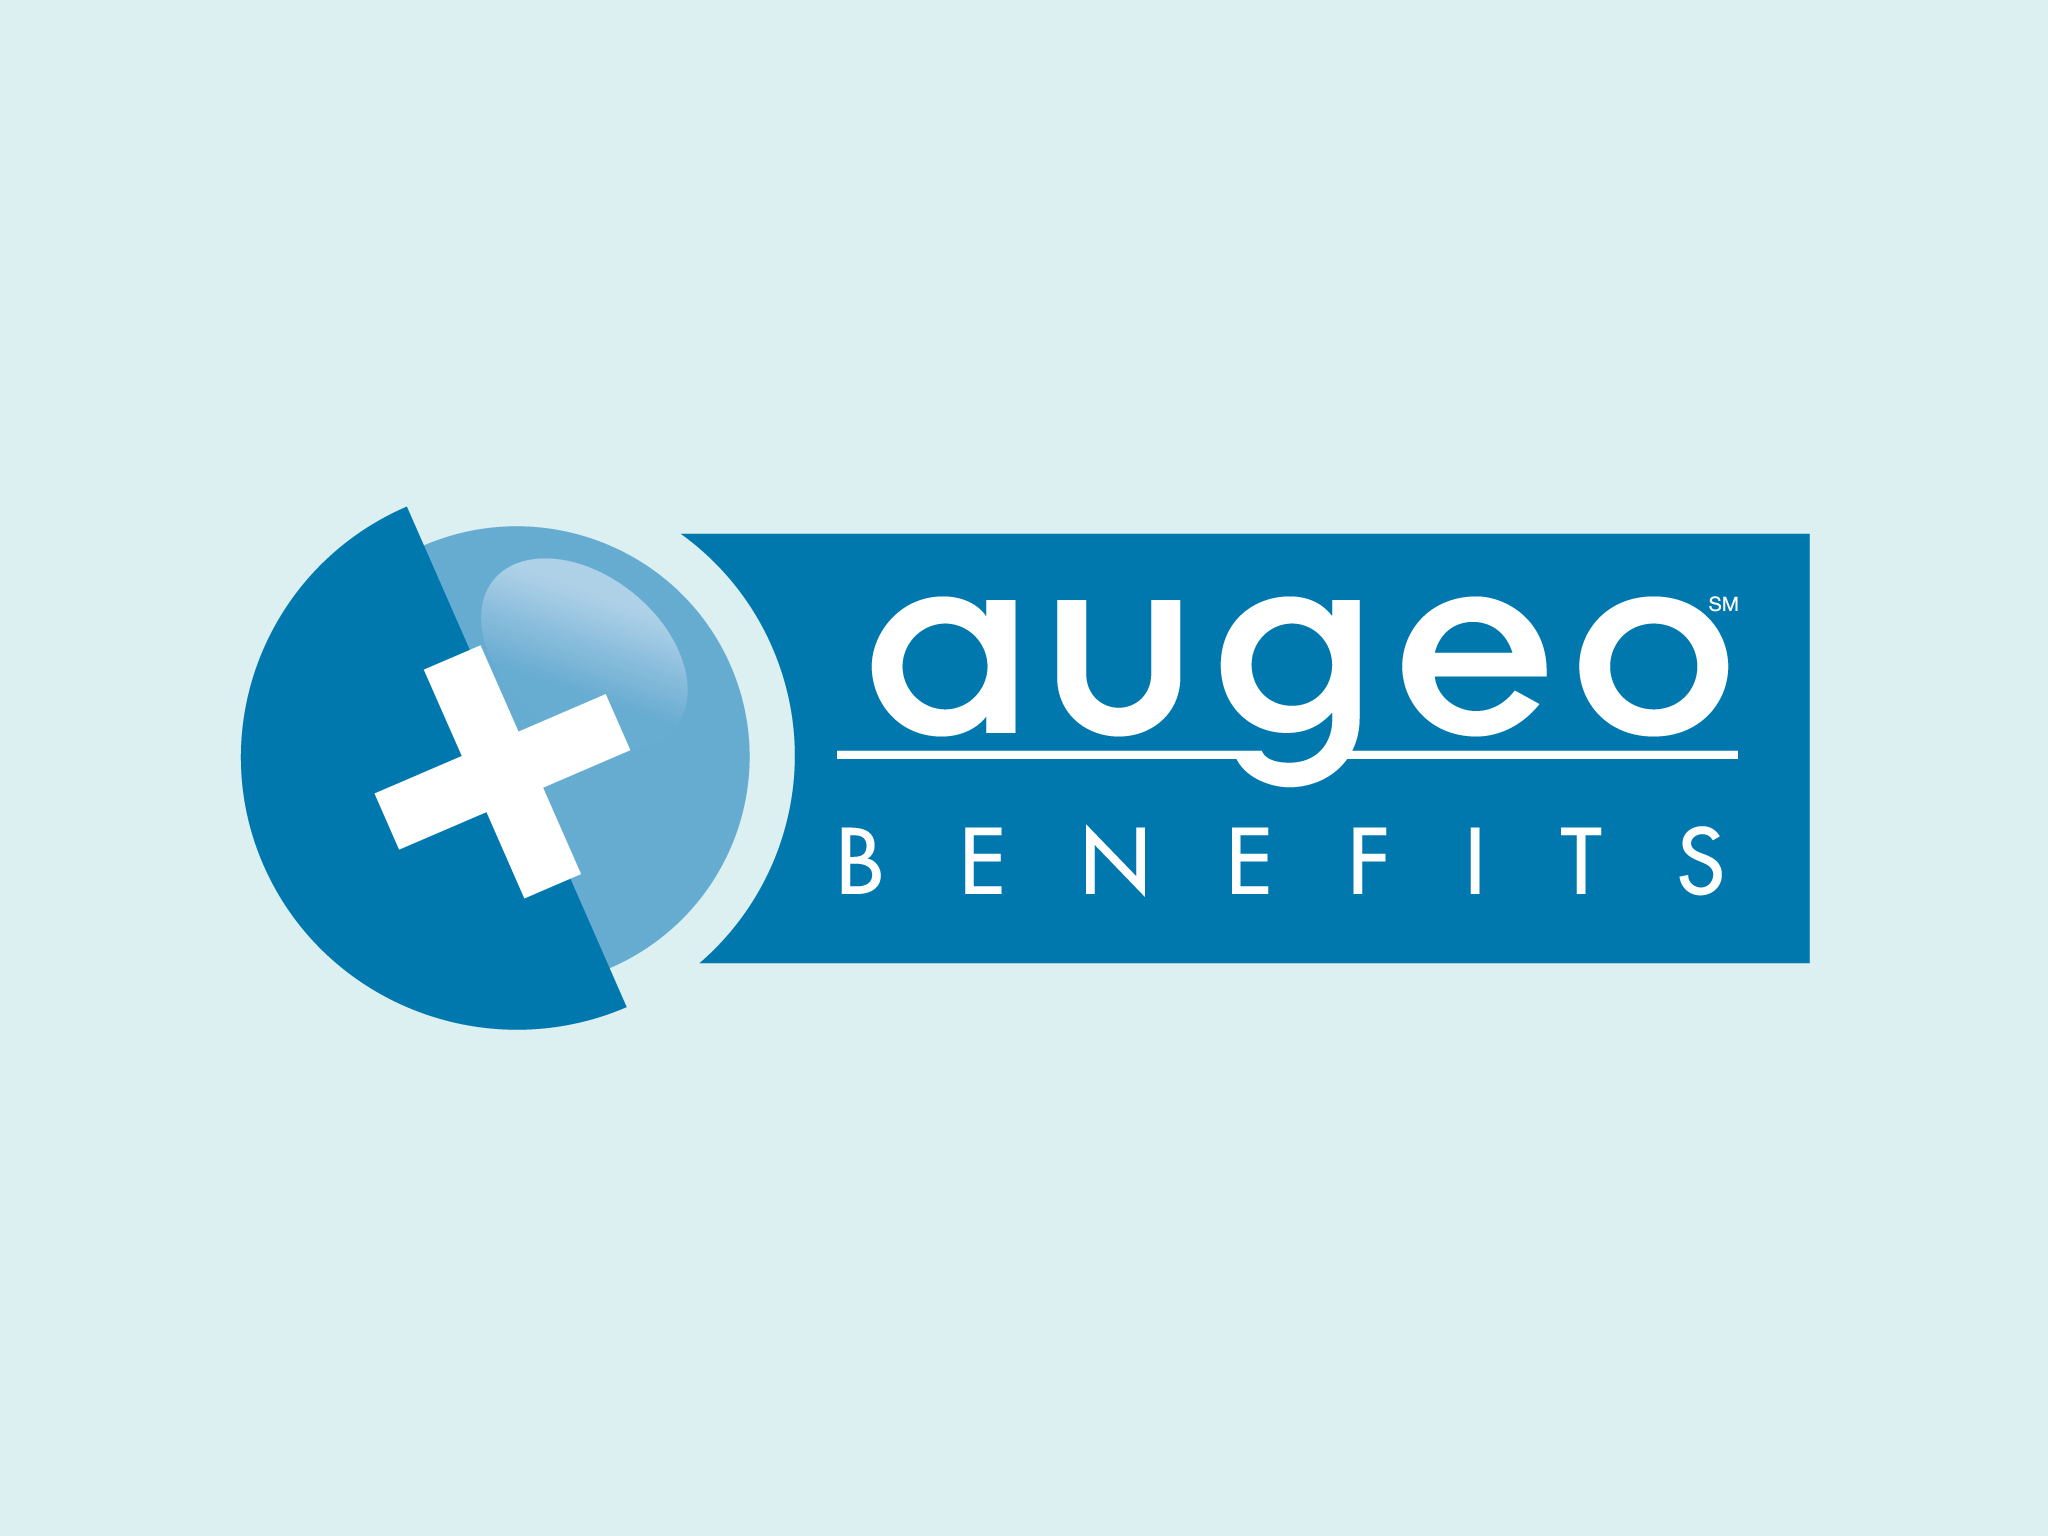 augeo benefits logo amp website schmitt creative